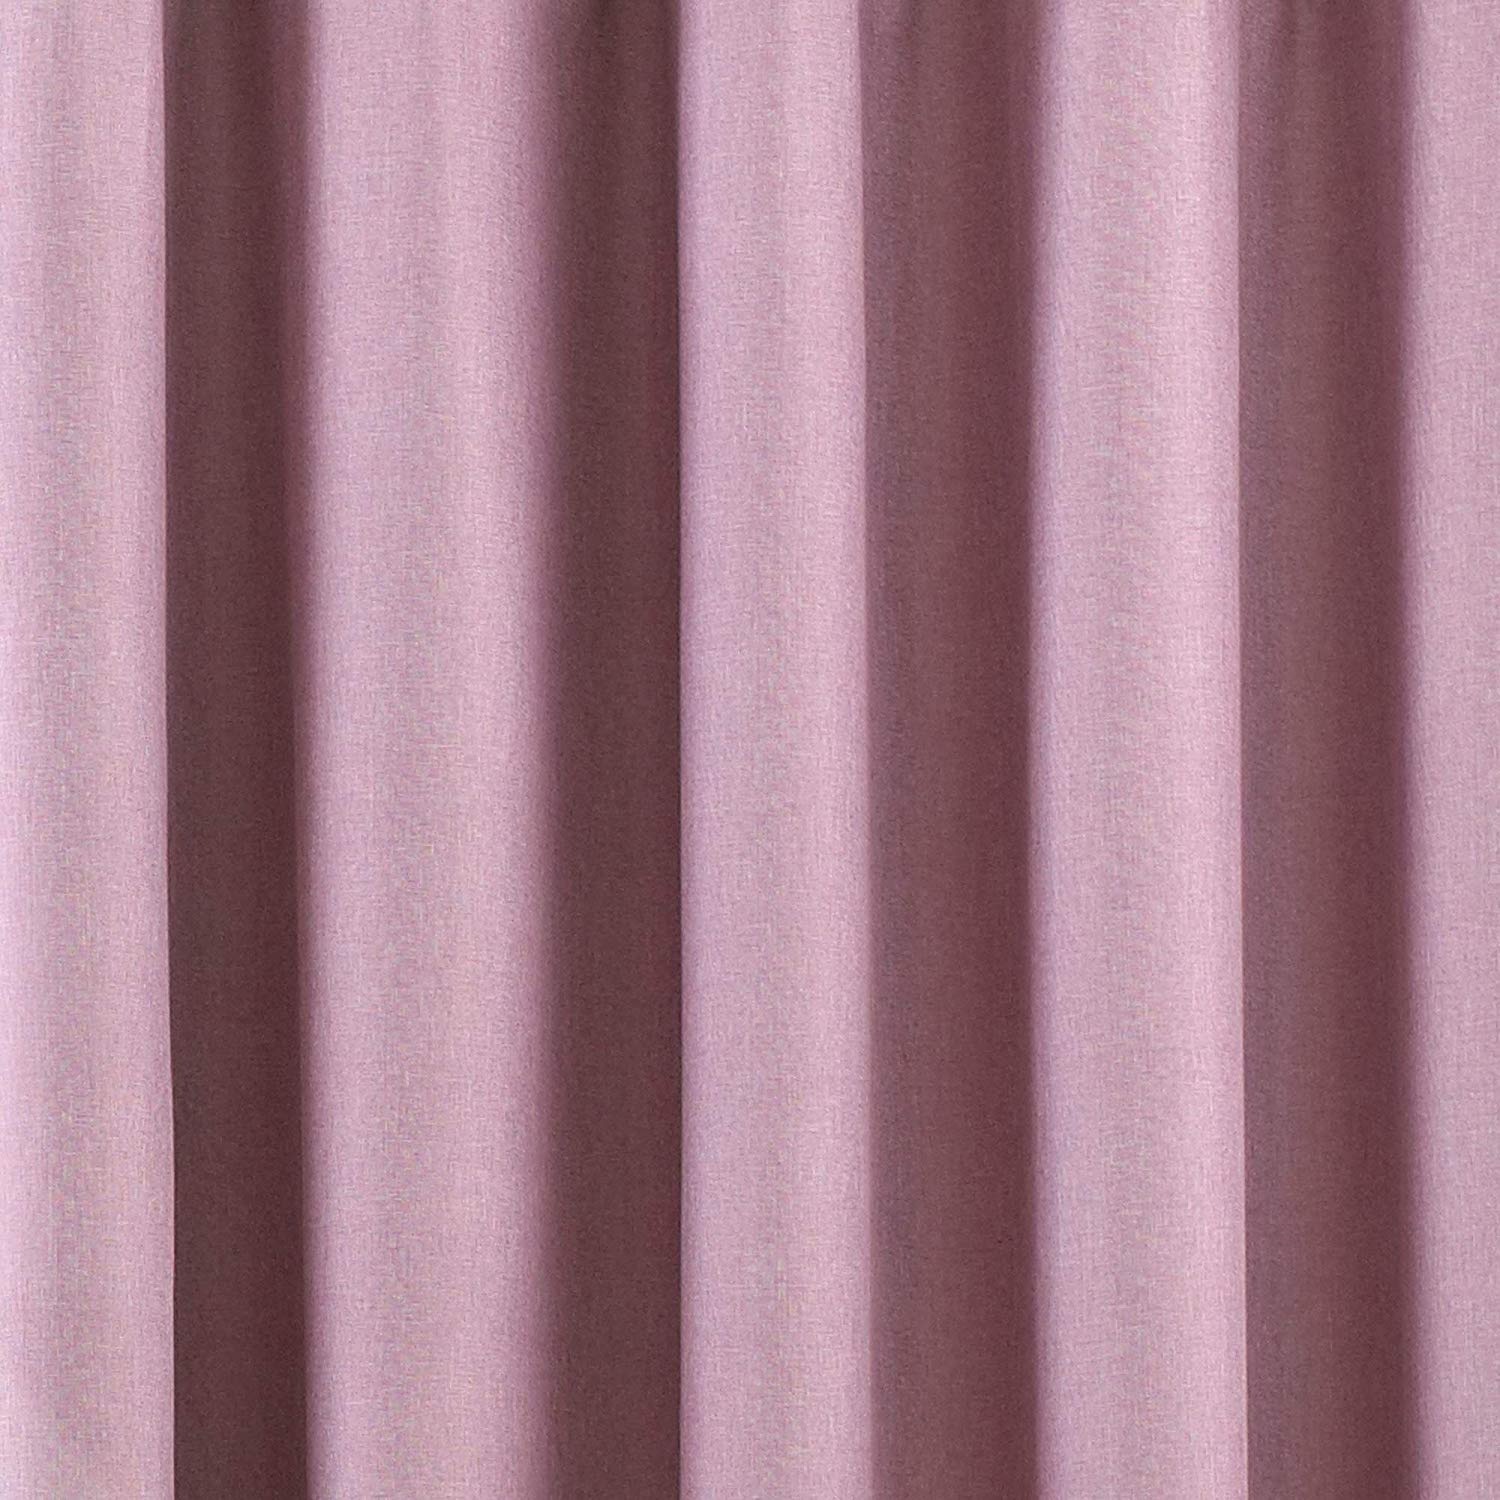 The Home Furnishings Company Mauve Eyelet Blackout Curtains, Blind and Cushion      [copy]